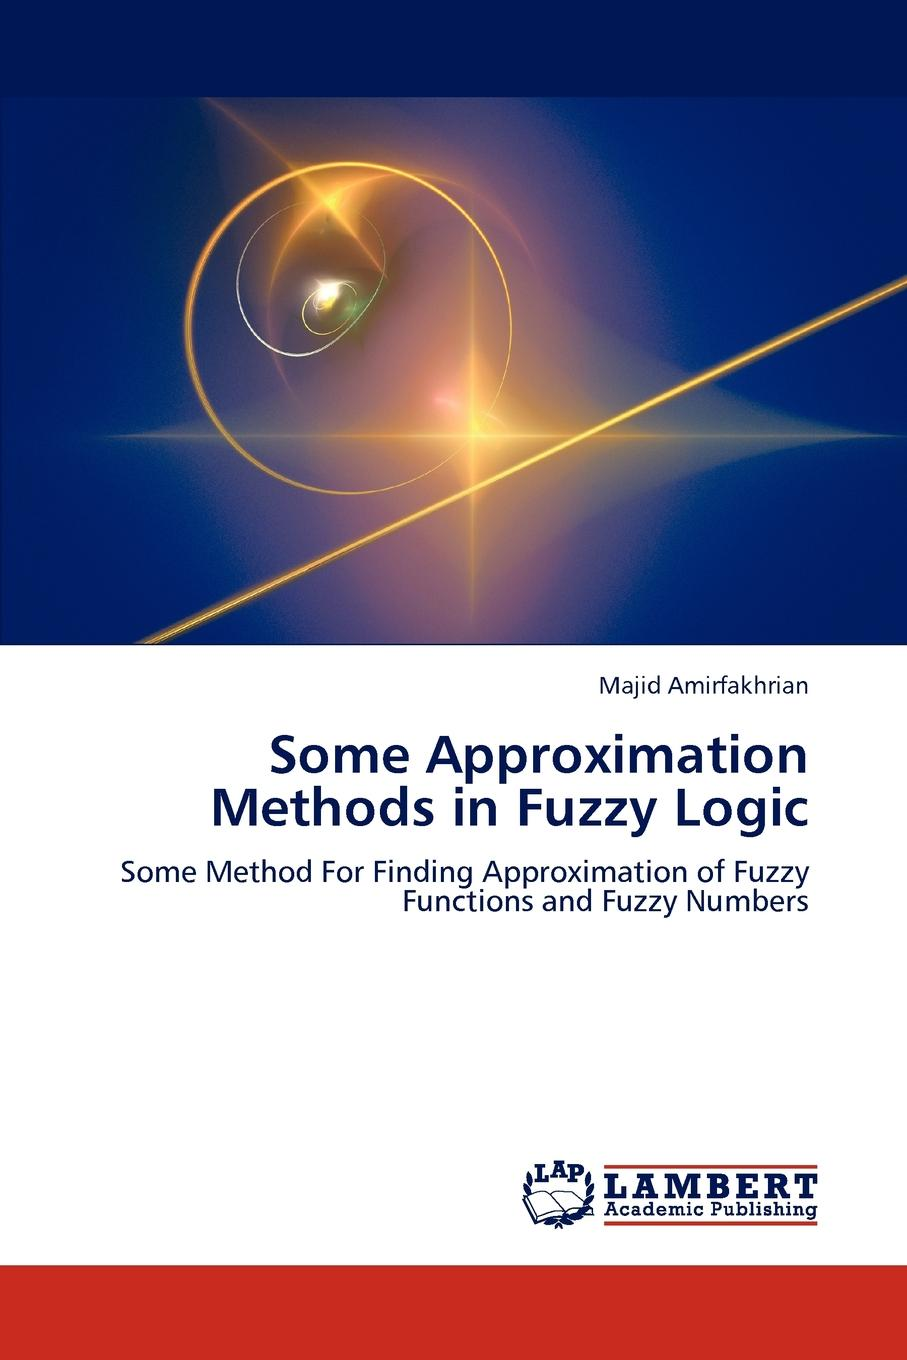 Majid Amirfakhrian Some Approximation Methods in Fuzzy Logic недорго, оригинальная цена